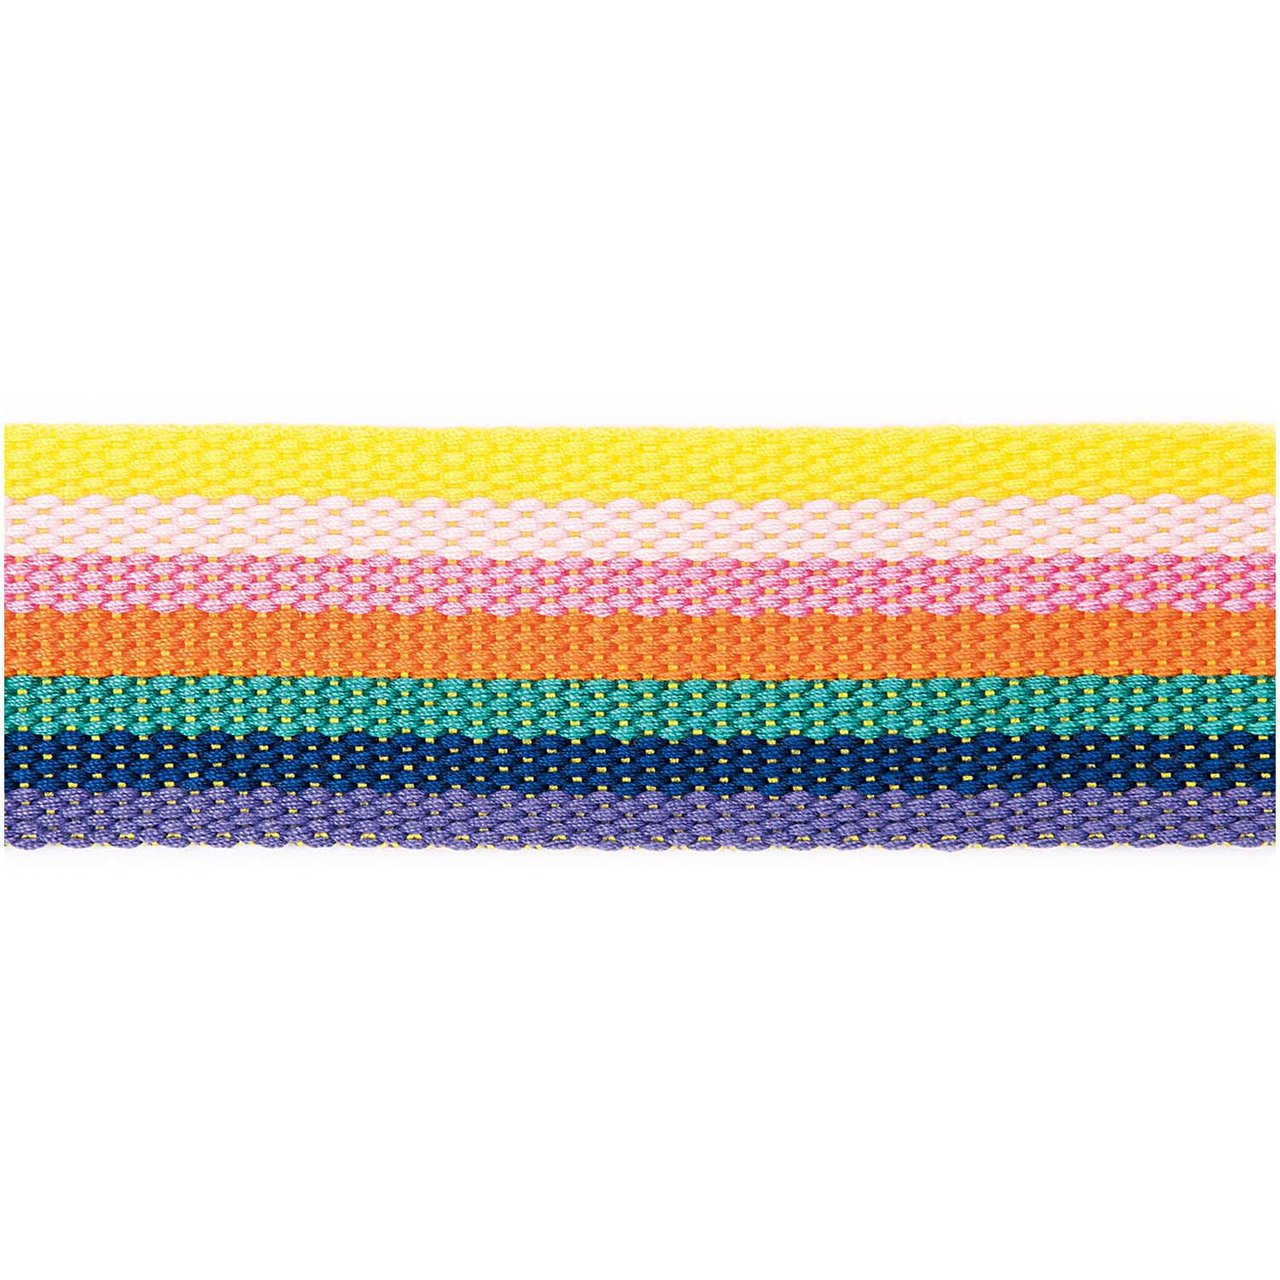 Rico Design Gurtband gestreift 40mm 2m rainbow von Rico Design